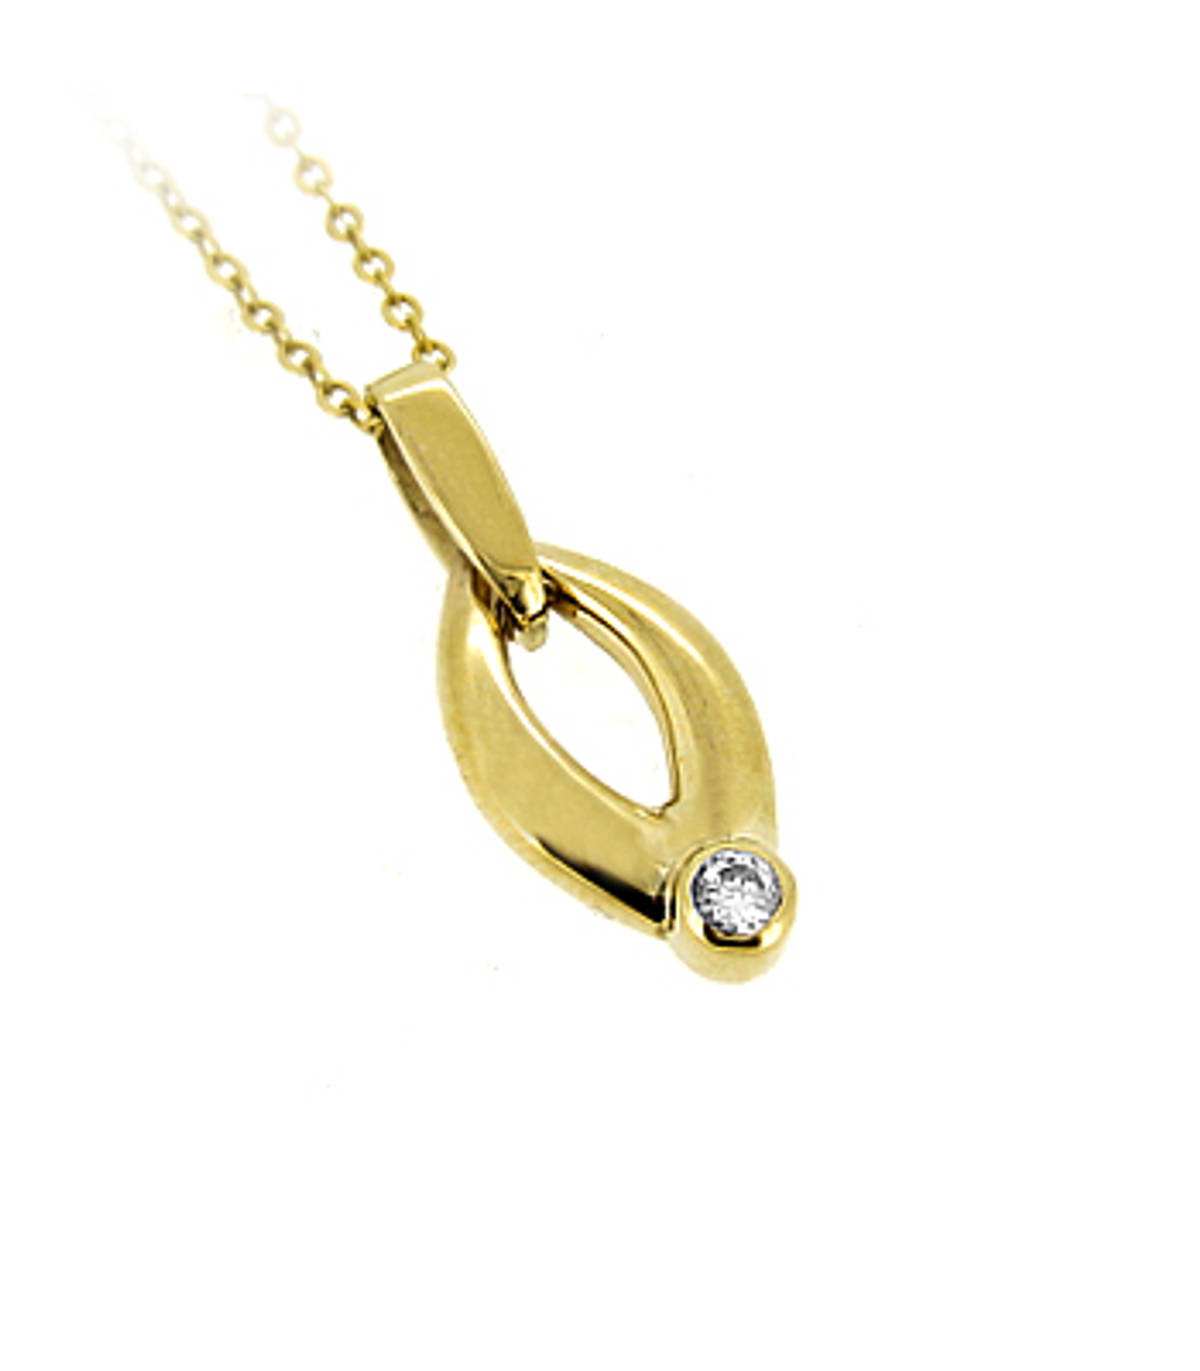 """9k yellow gold CZ oval drop pendant on 9k yellow gold 18"""" chain Metal: 9k yellow gold  9k yellow gold 18"""" chain Length  2.4cm  Width  0.9cm Made in Ireland"""